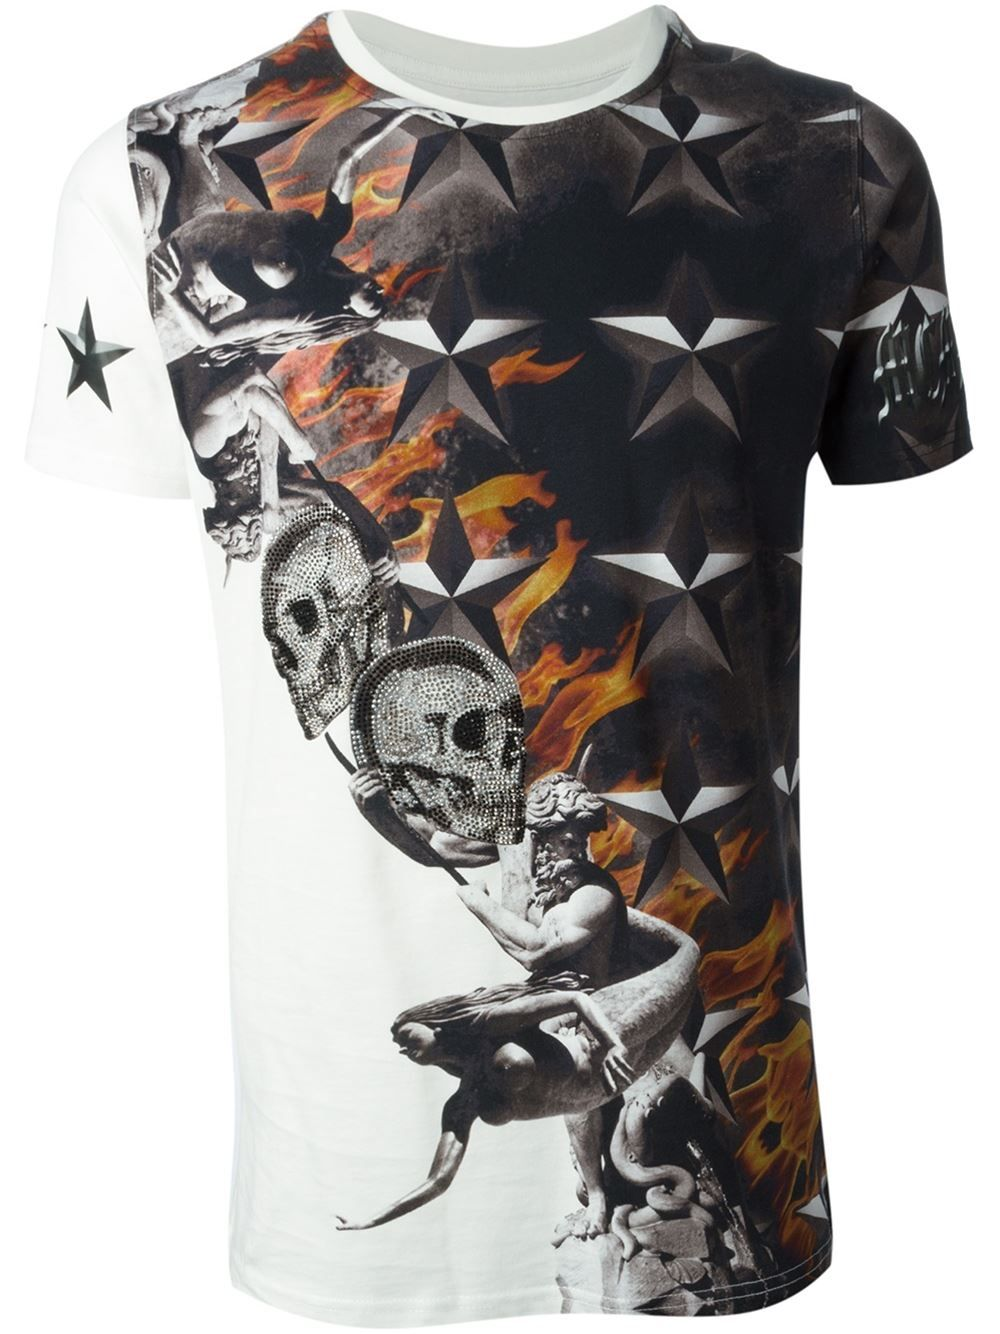 eedfec5a93f1 Philipp Plein  tomorrow  T-shirt - Verso - Farfetch.com   t-shirts ...